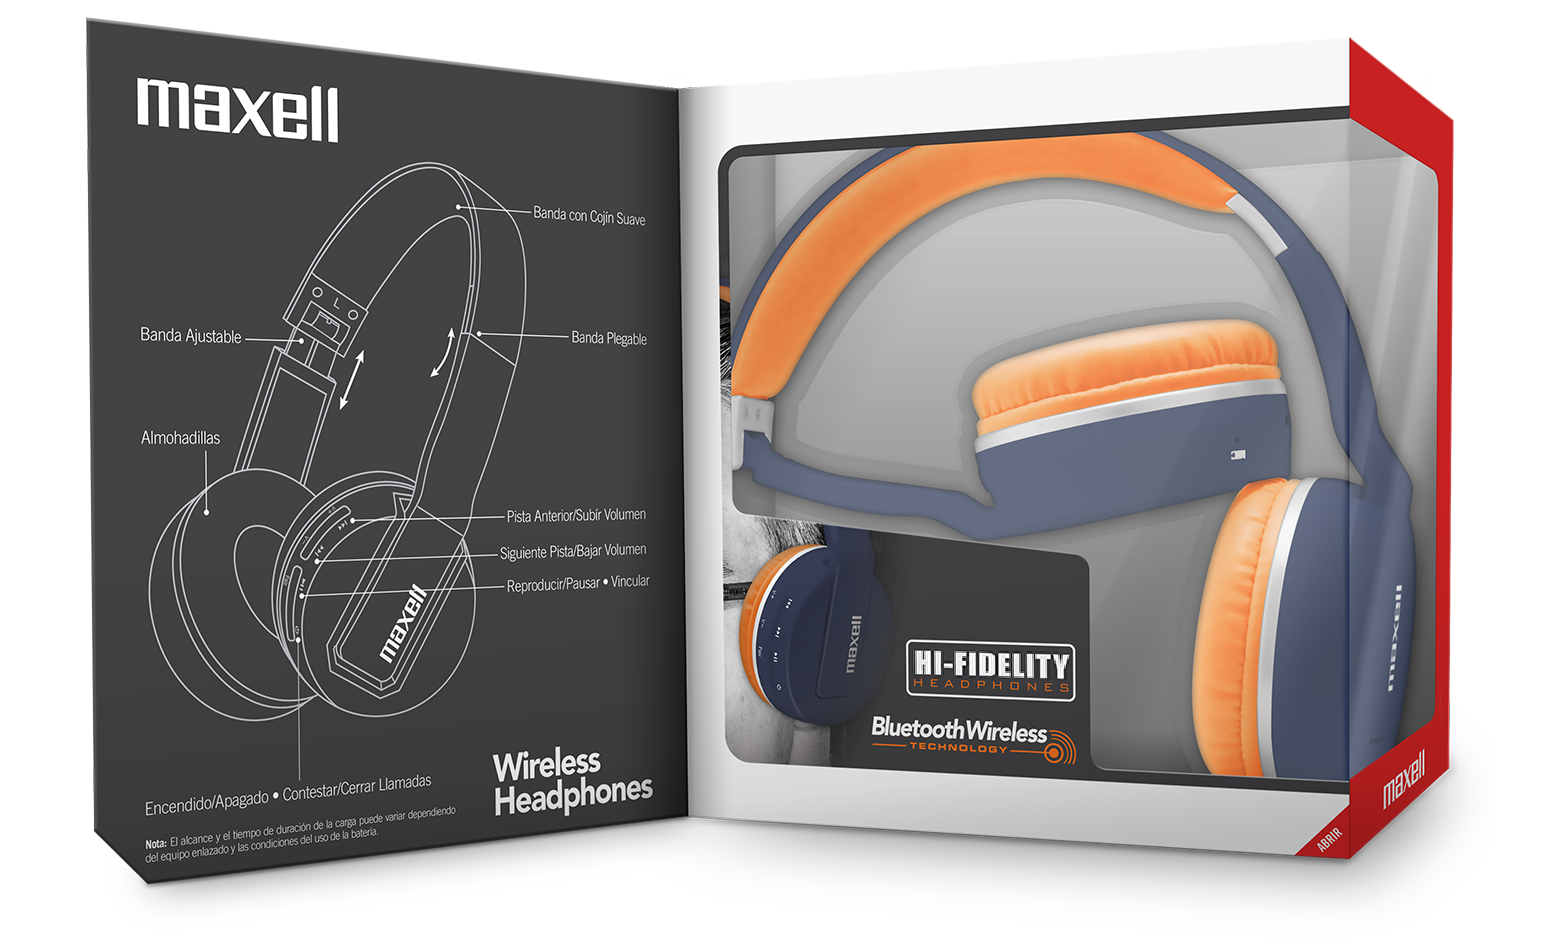 maxell Wireless Headphone